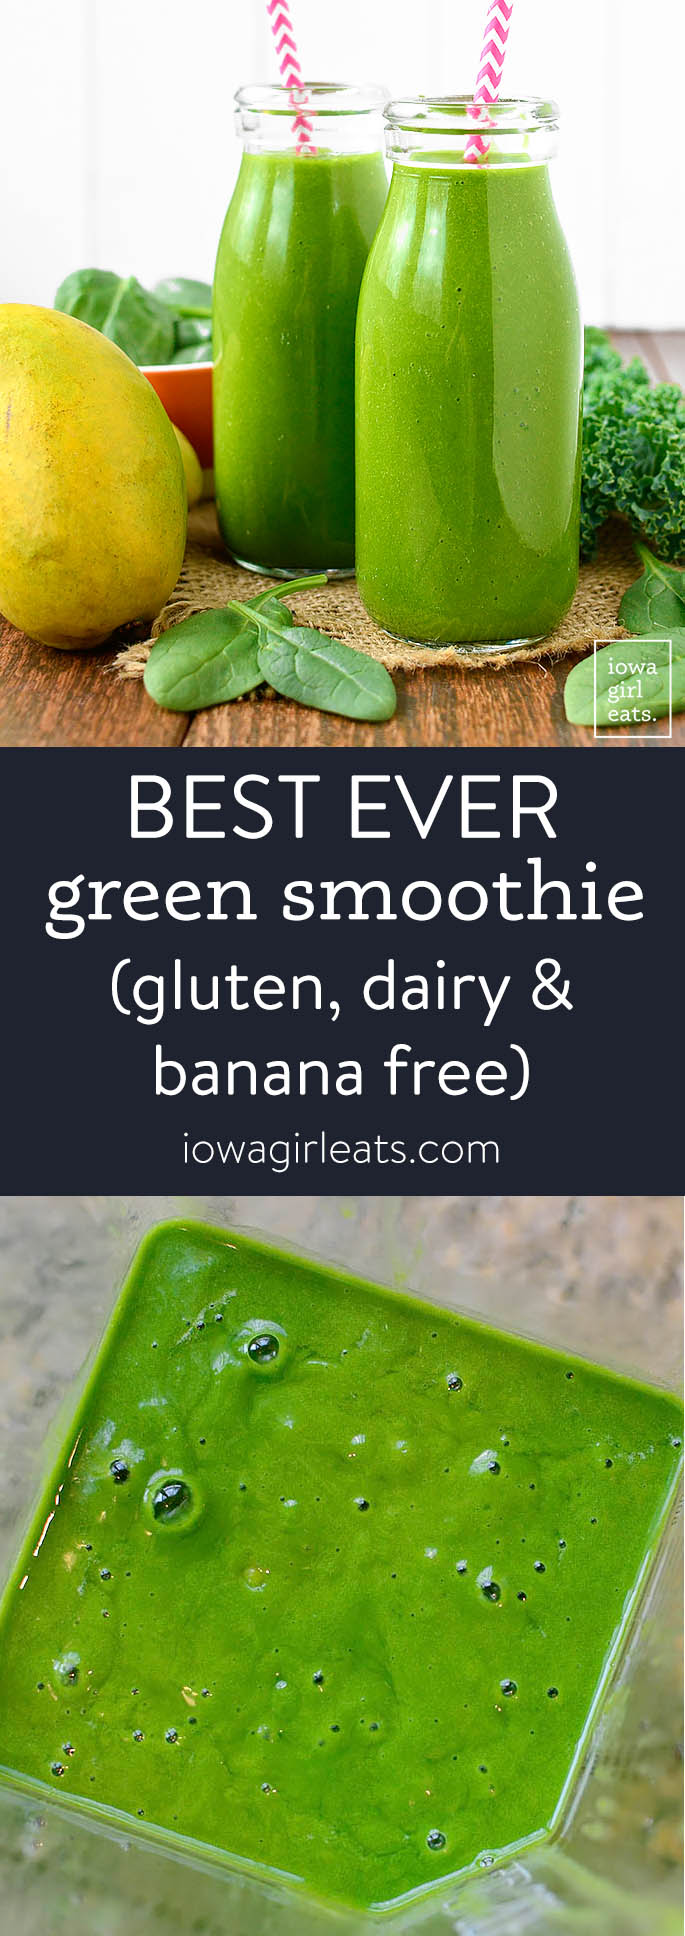 Photo collage of best ever green smoothie